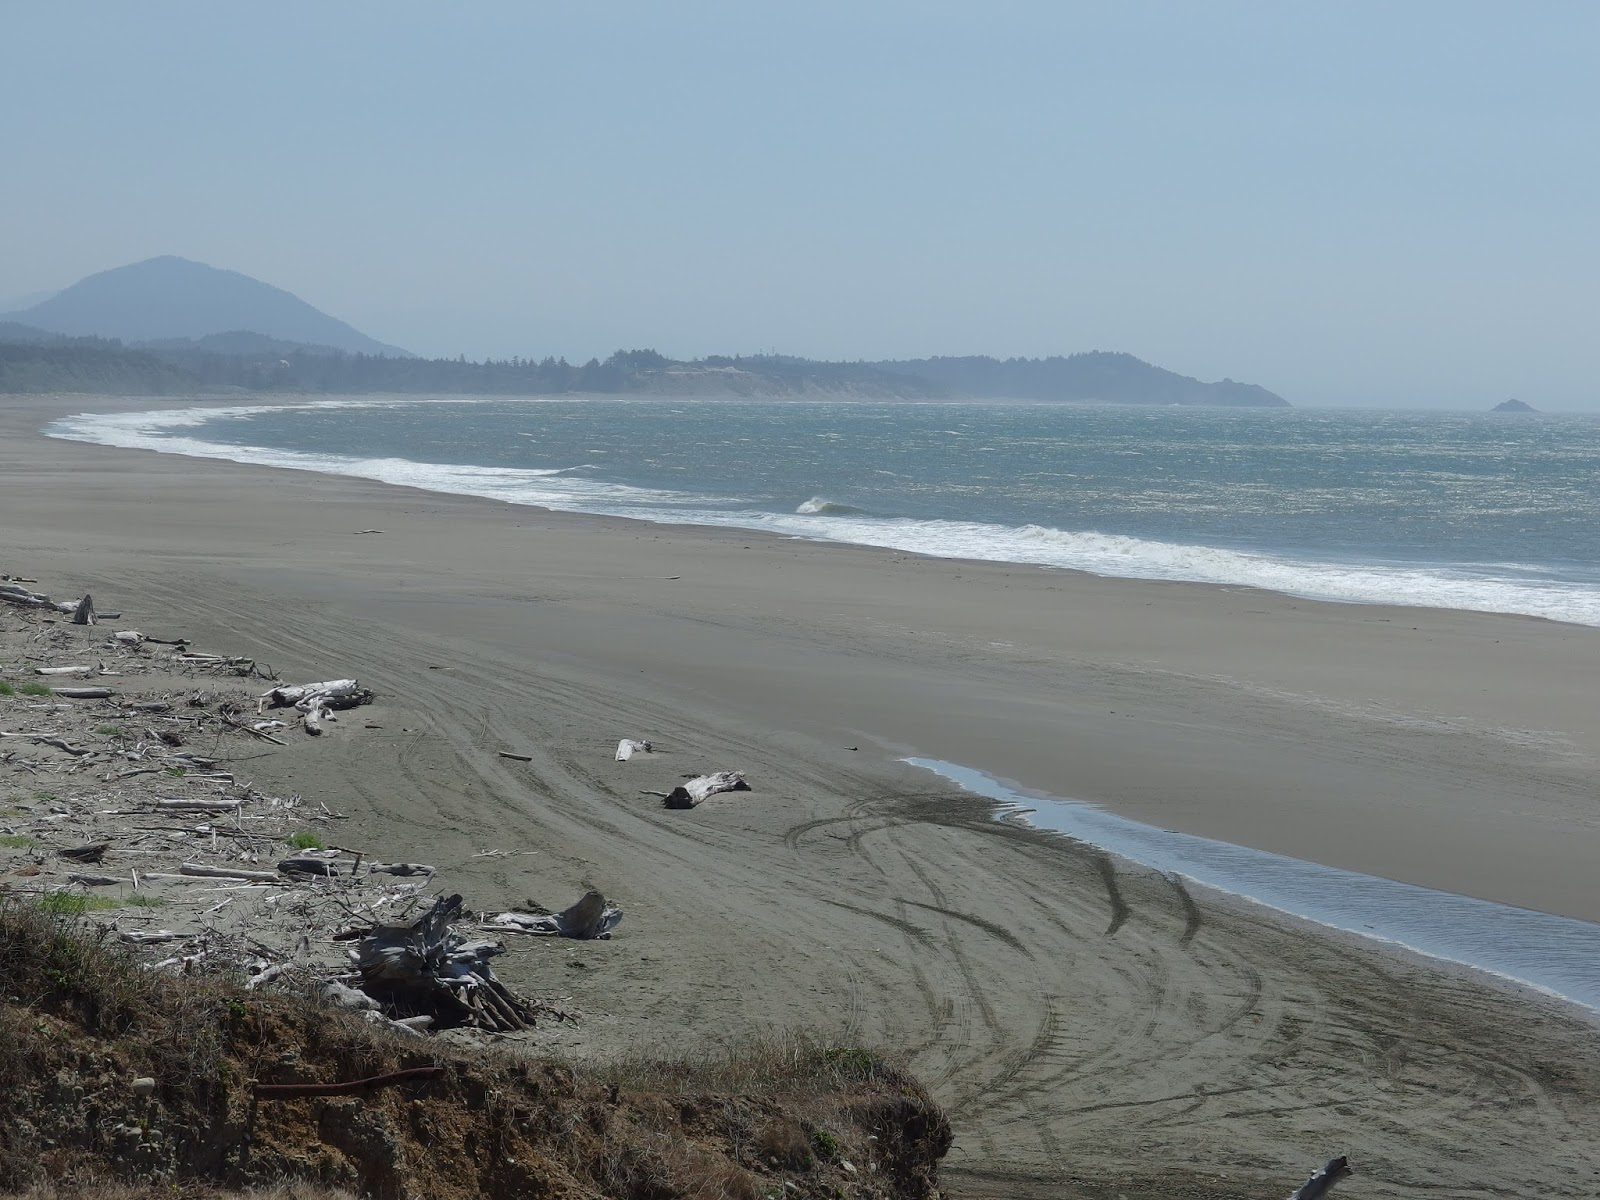 port orford hindu singles Personal ads for port orford, or are a great way to find a life partner, movie date, or a quick hookup personals are for people local to port orford, or and are for ages 18+ of either sex.